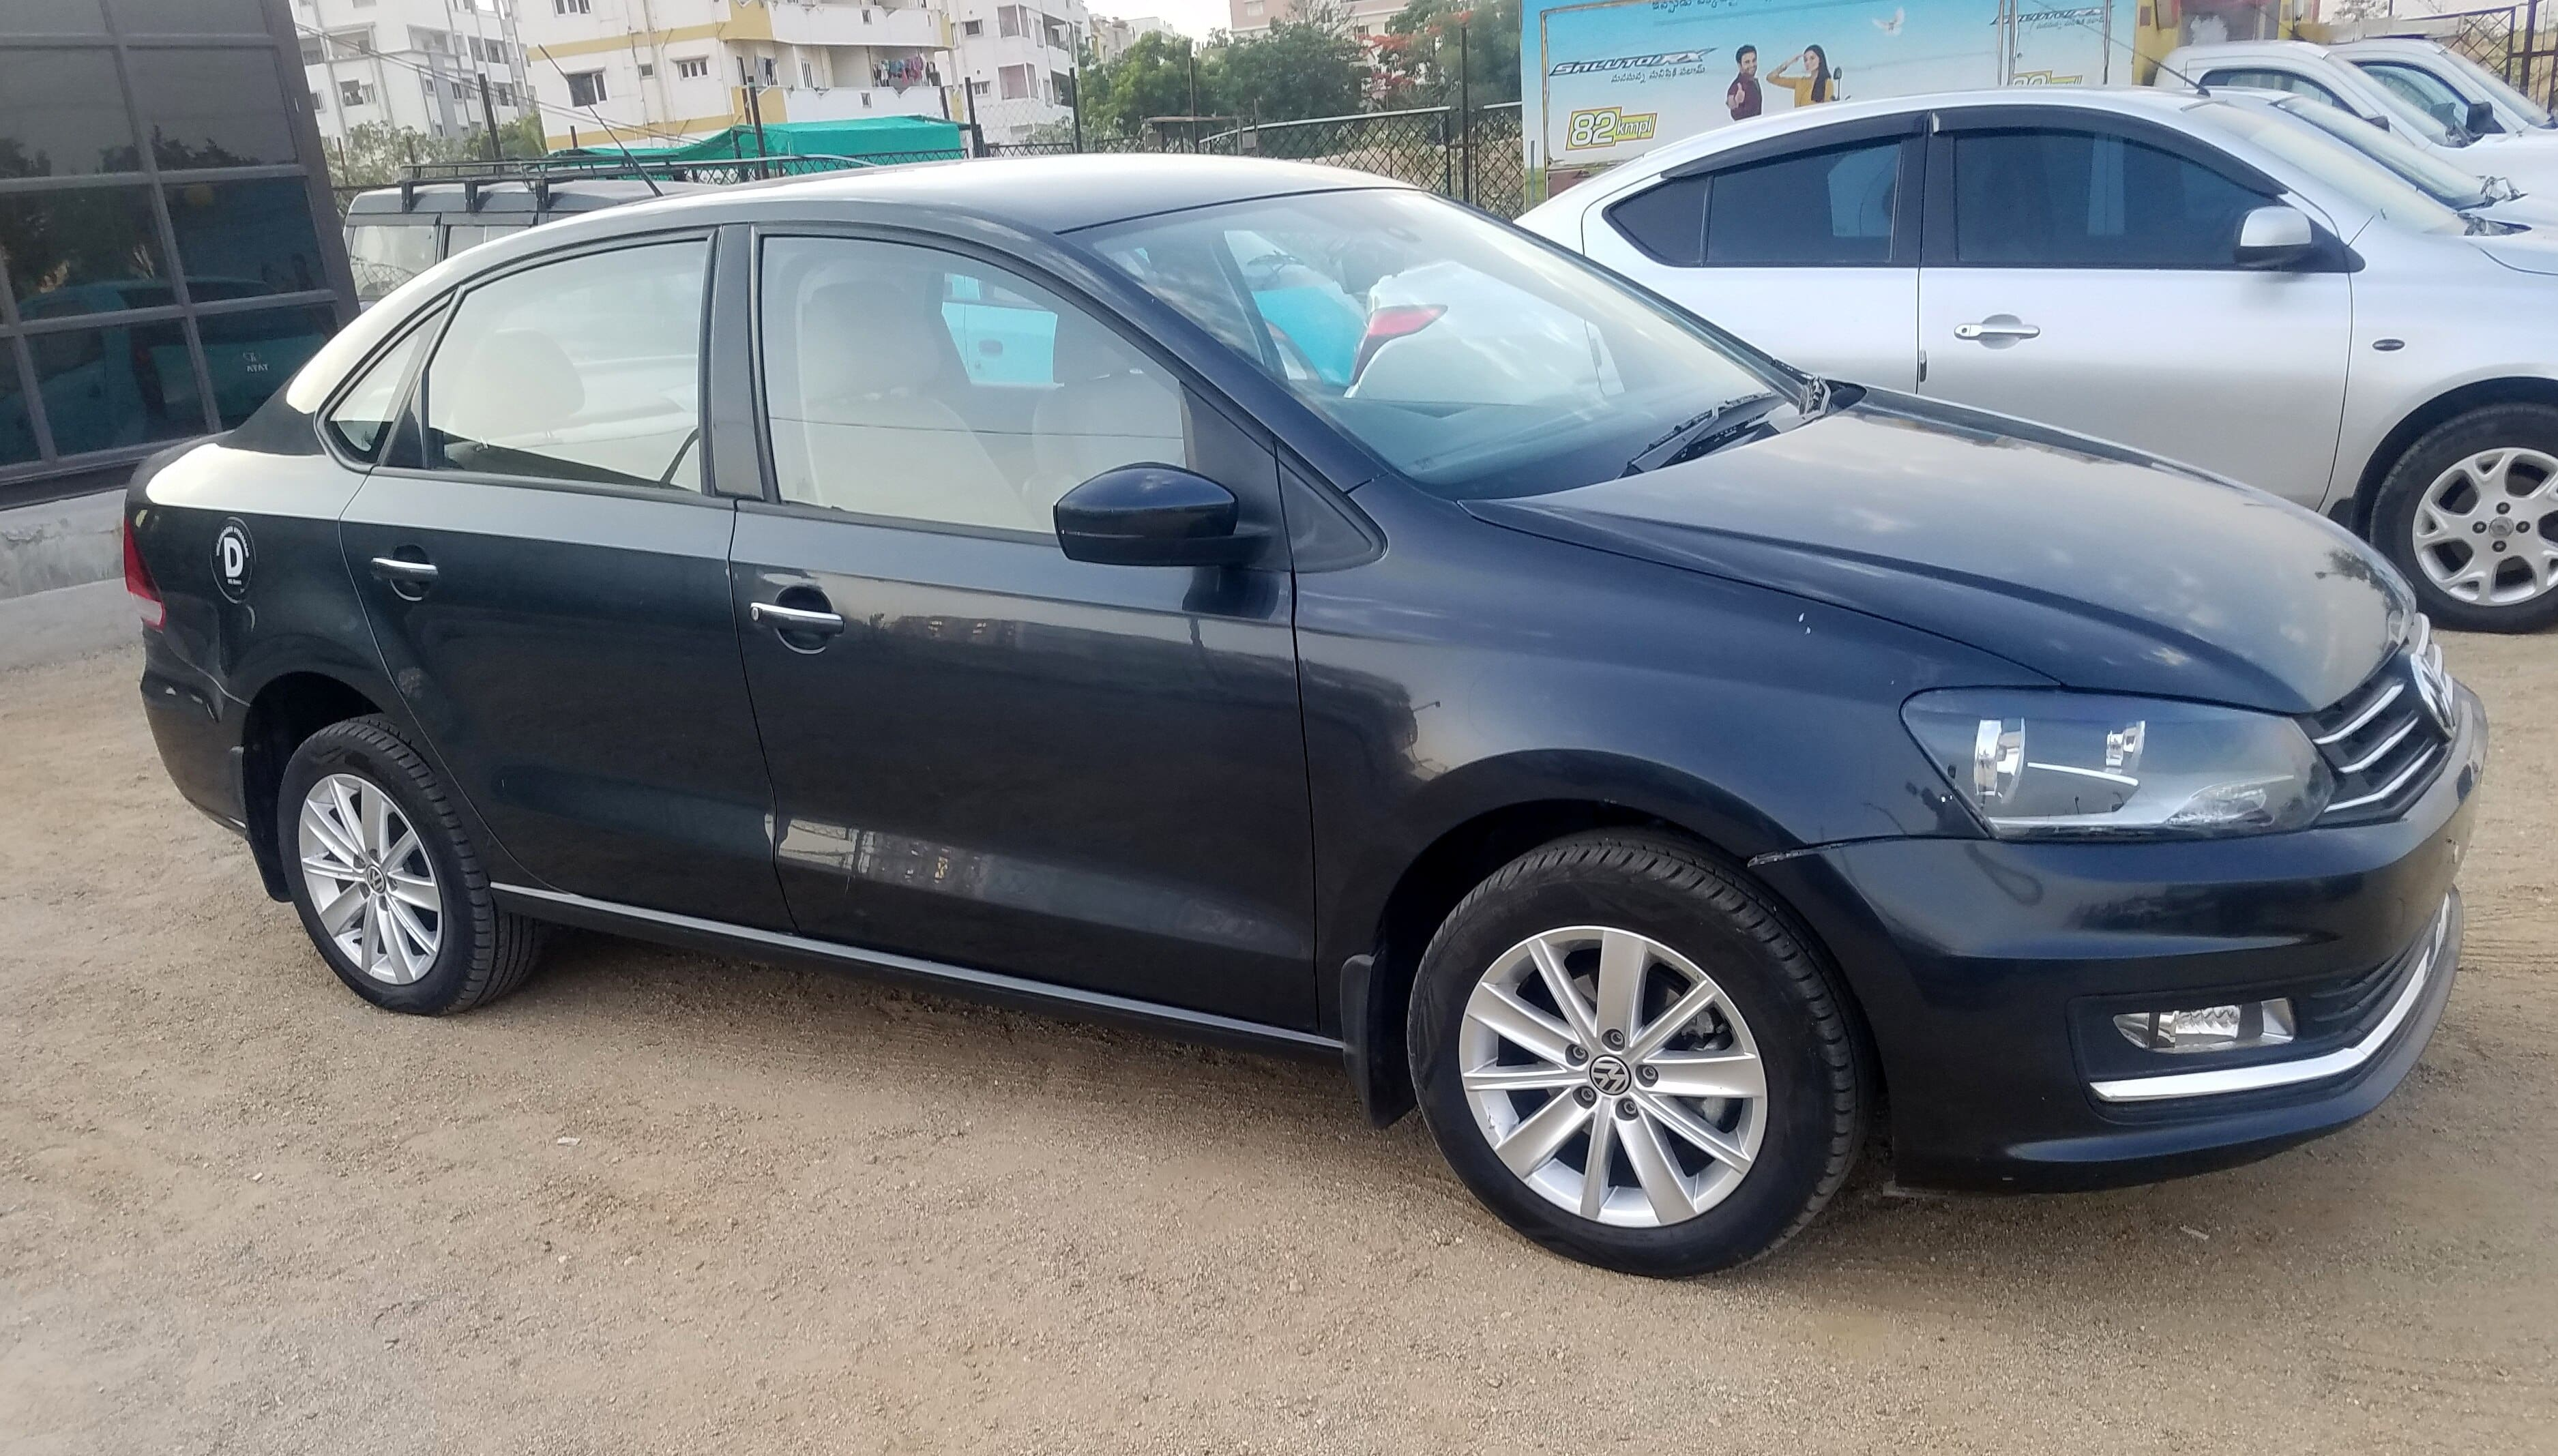 Volkswagen Vento 1.5 TDI Highline AT BSIV